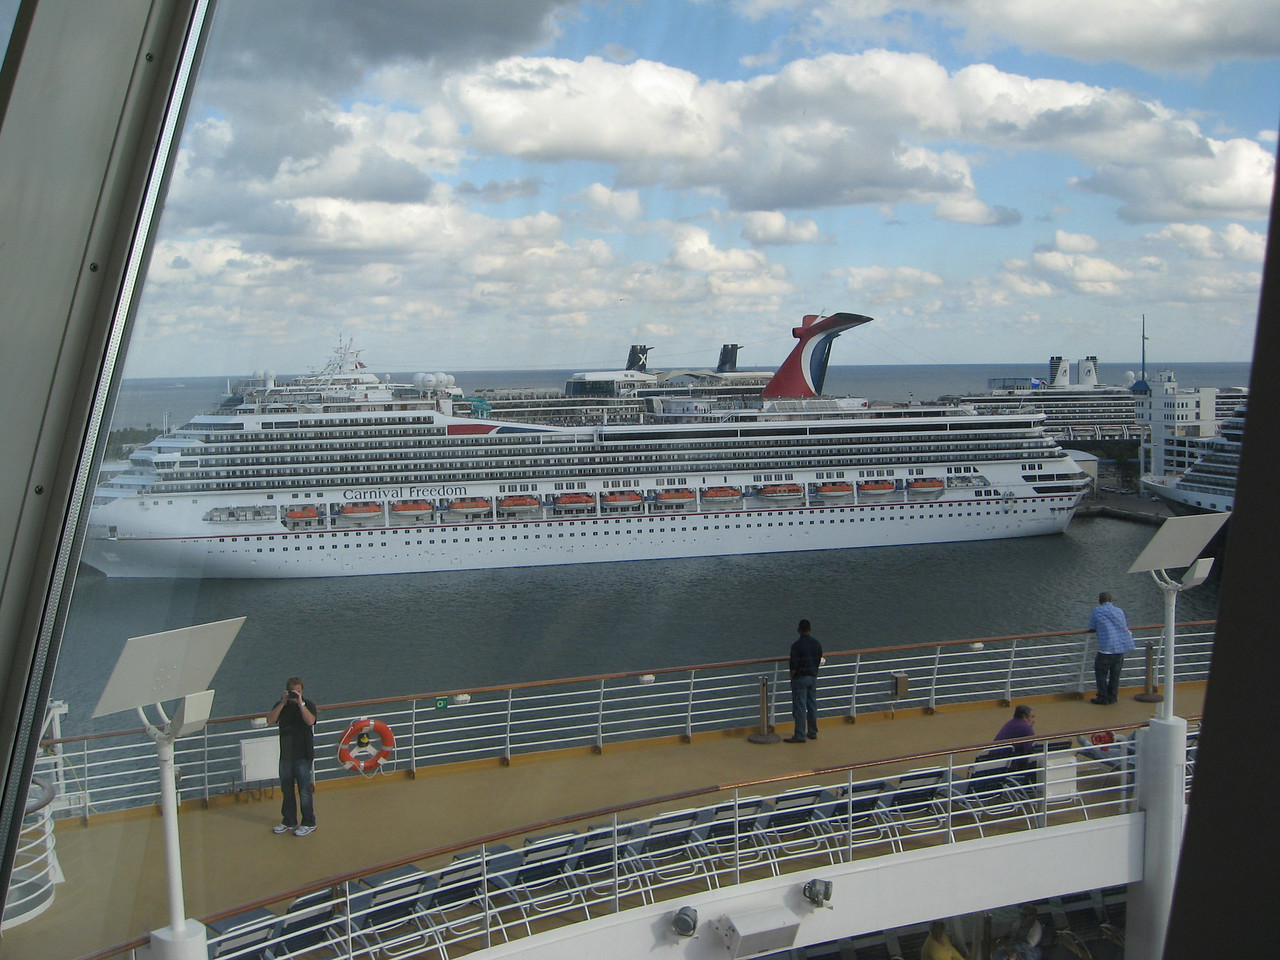 Looking down on Carnival cruise ship.